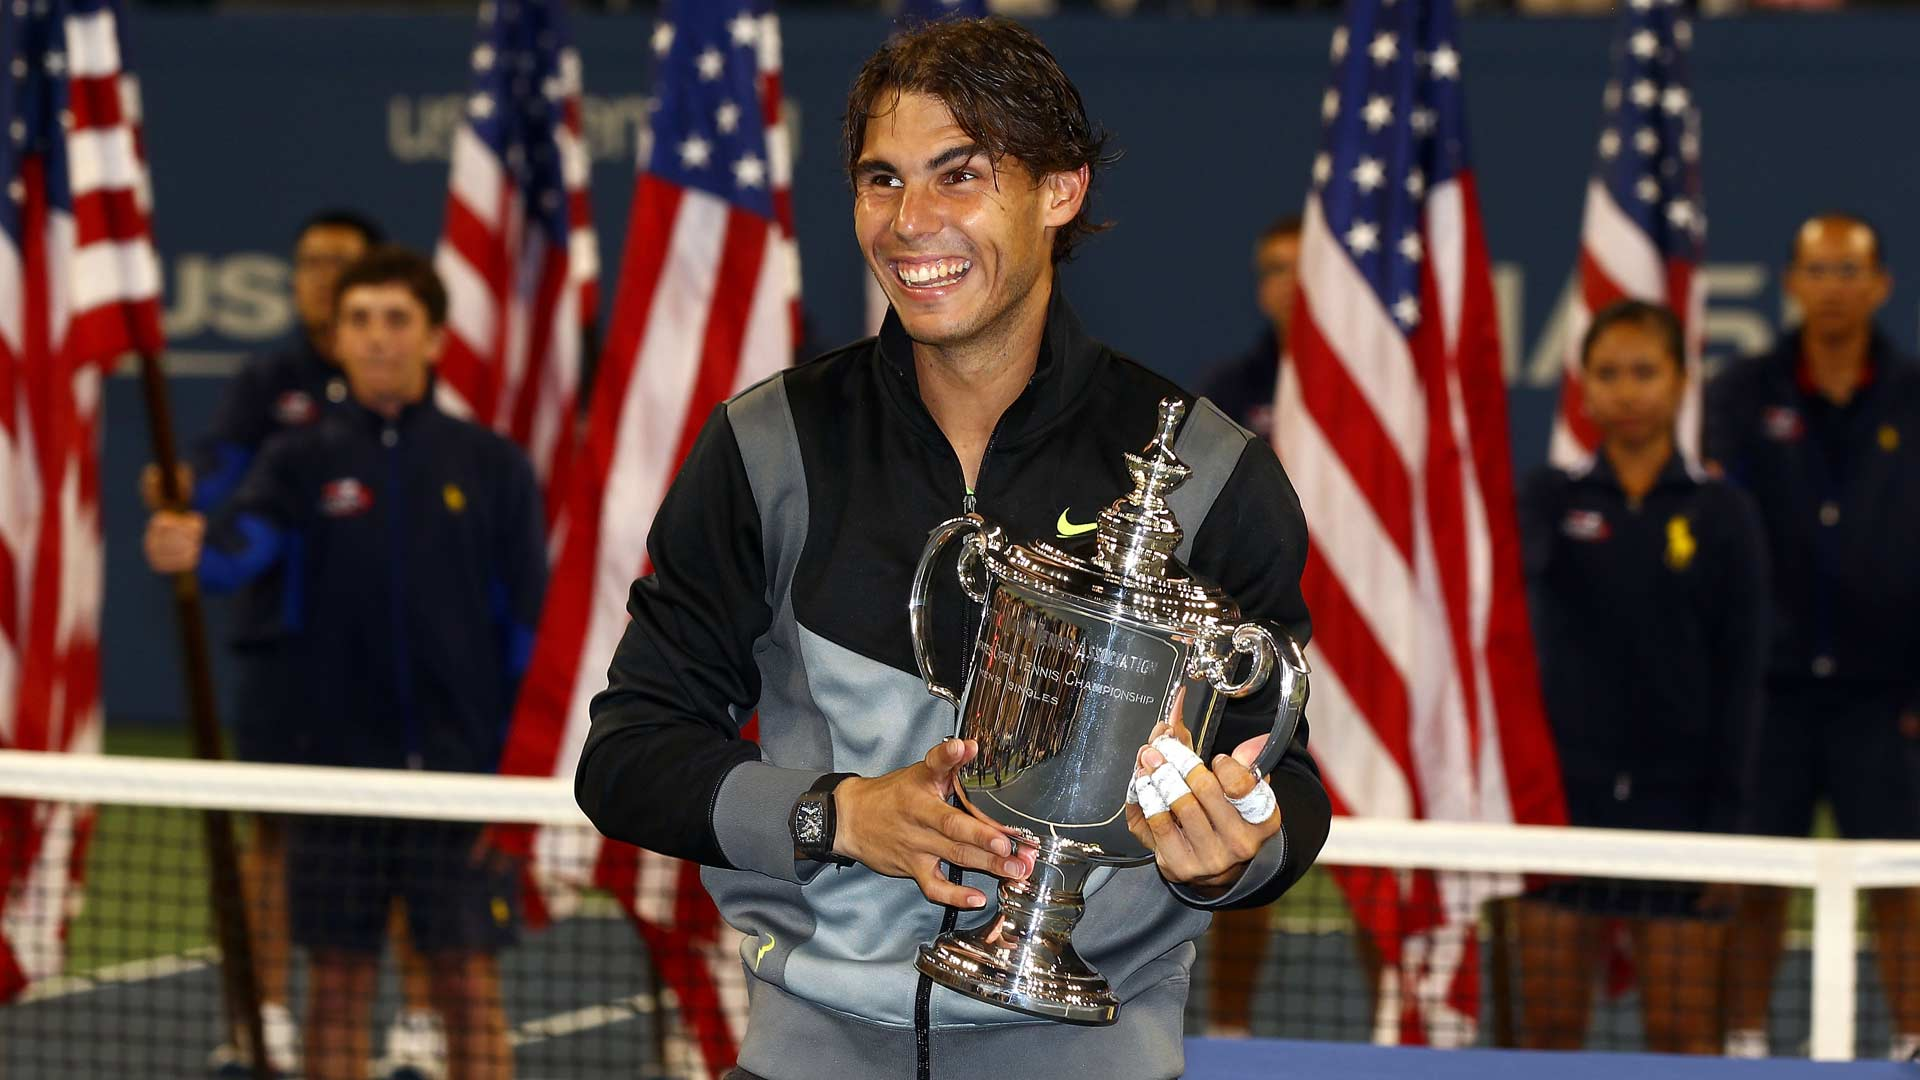 <a href='https://www.atptour.com/en/players/rafael-nadal/n409/overview'>Rafael Nadal</a> wins the 2010 <a href='https://www.atptour.com/en/tournaments/us-open/560/overview'>US Open</a>